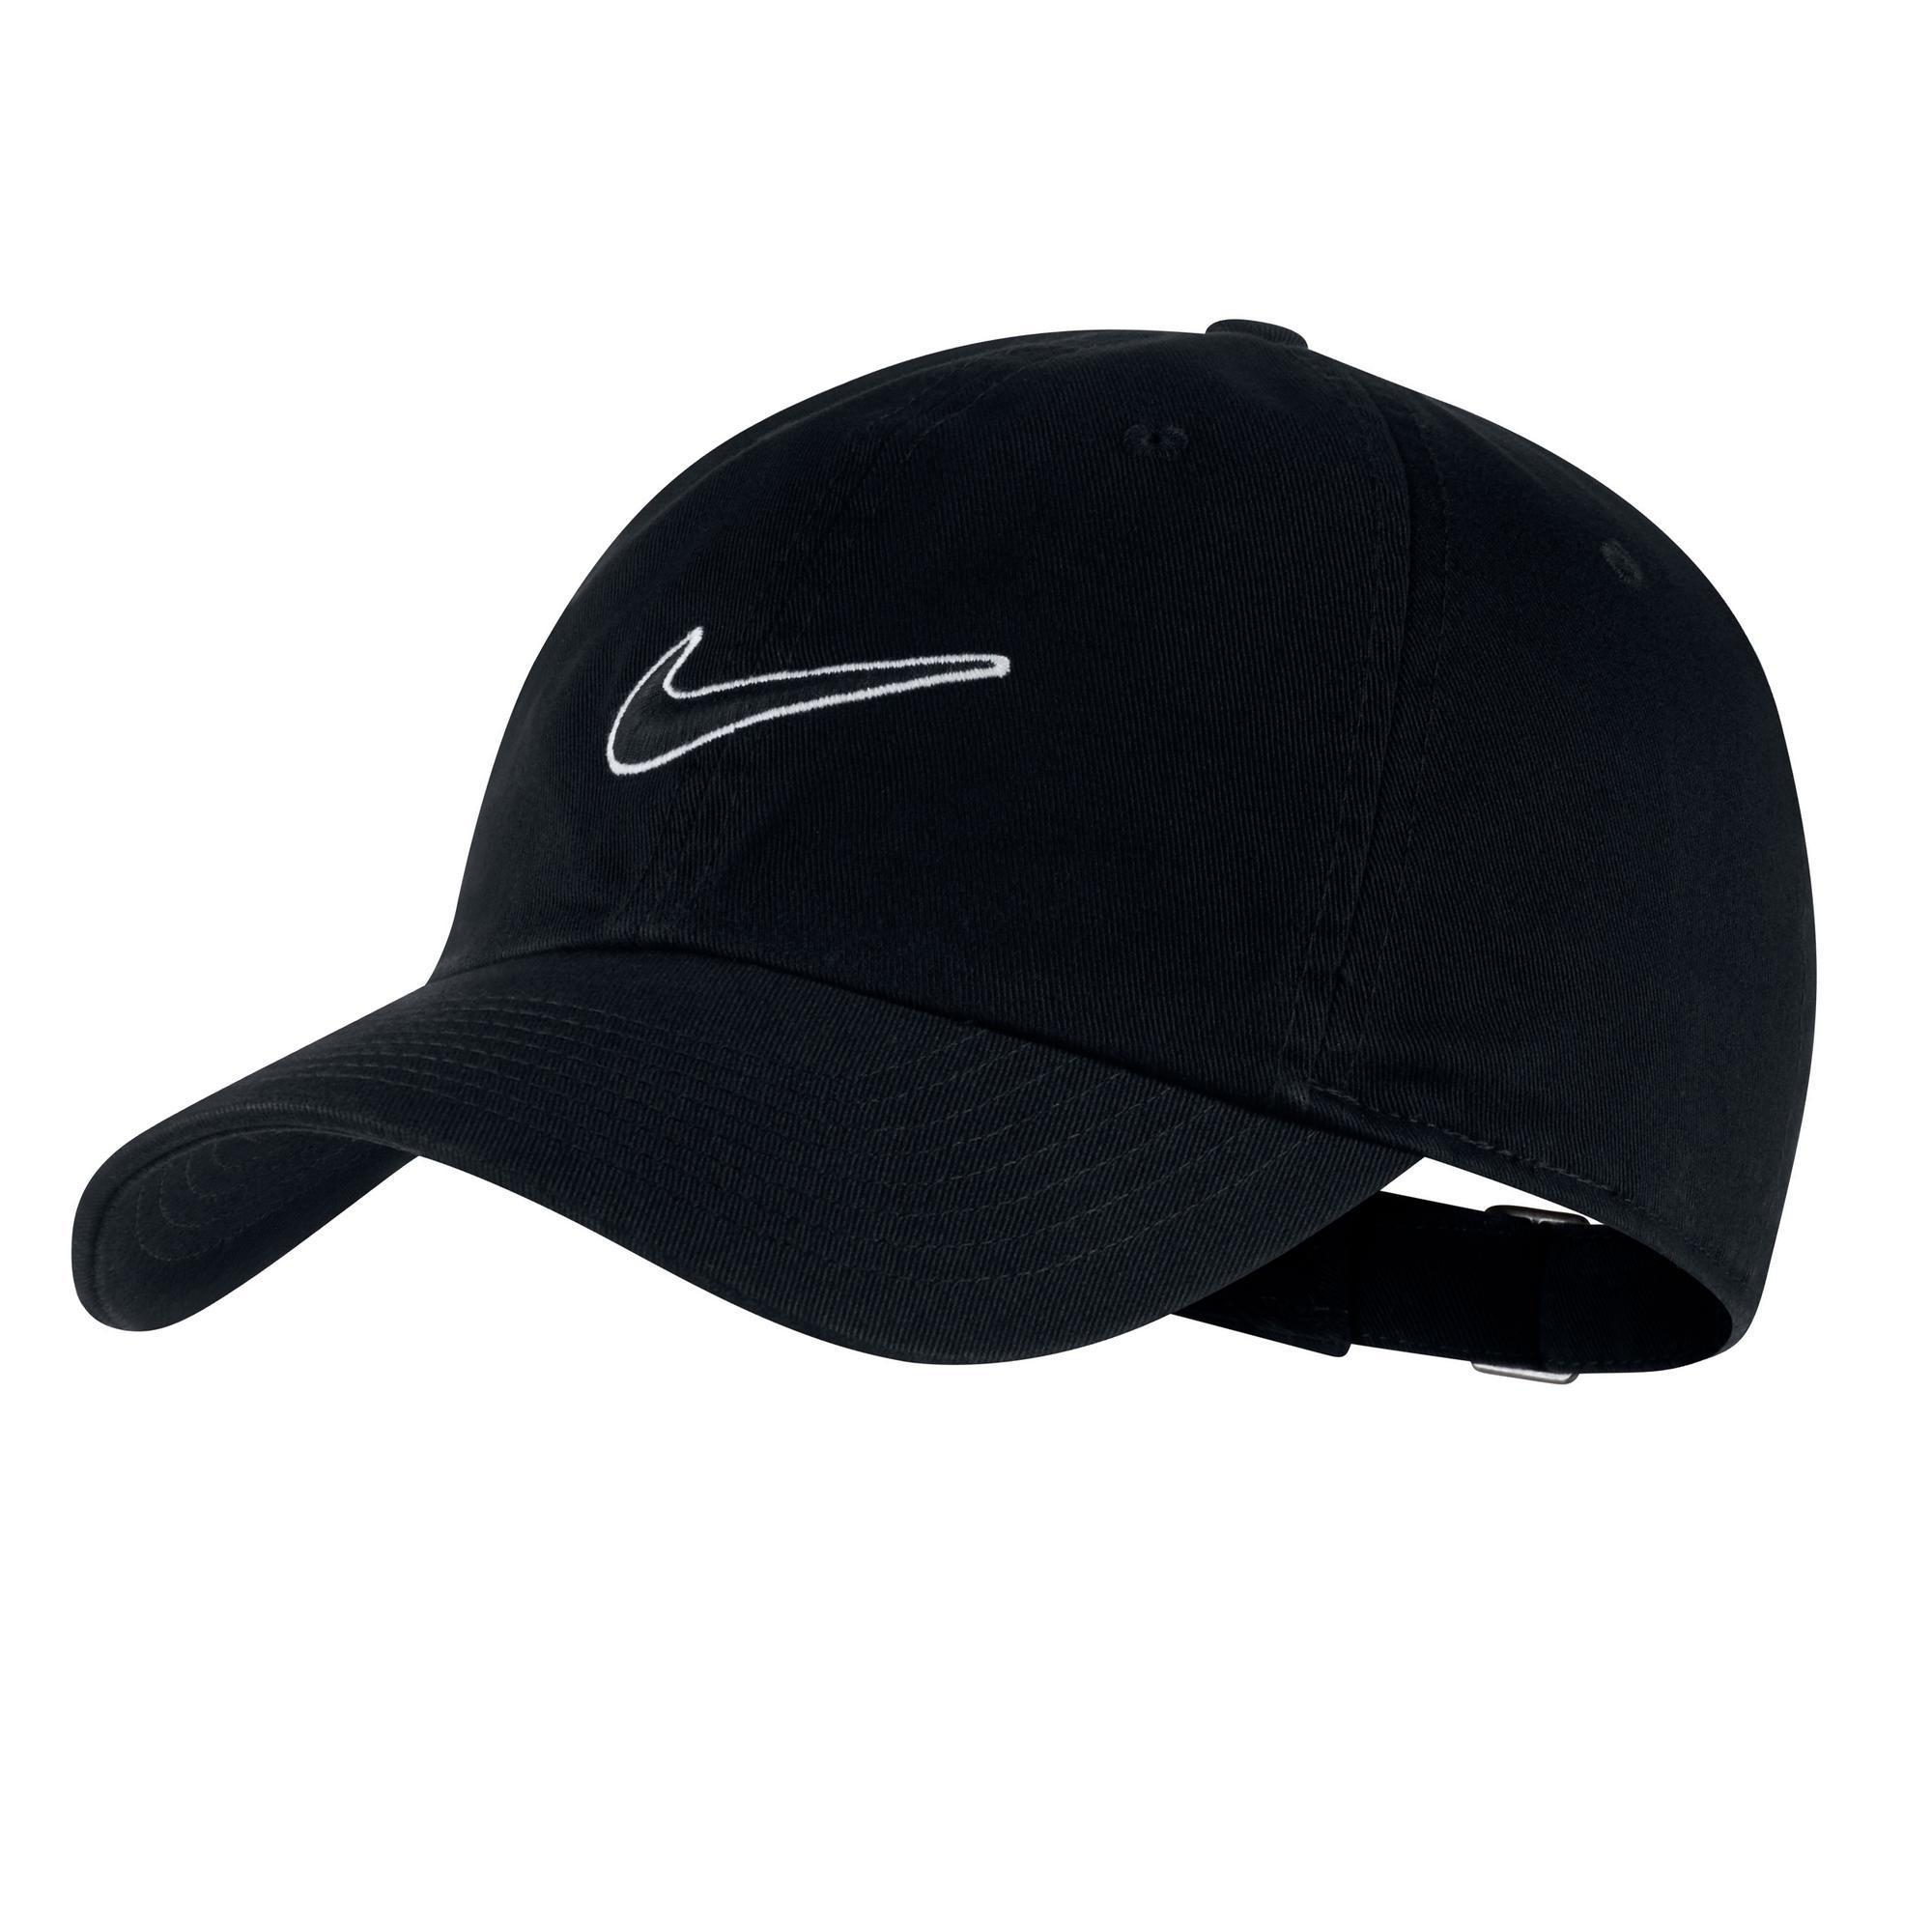 super quality hot new products best choice CASQUETTE ADULTE NIKE NOIRE